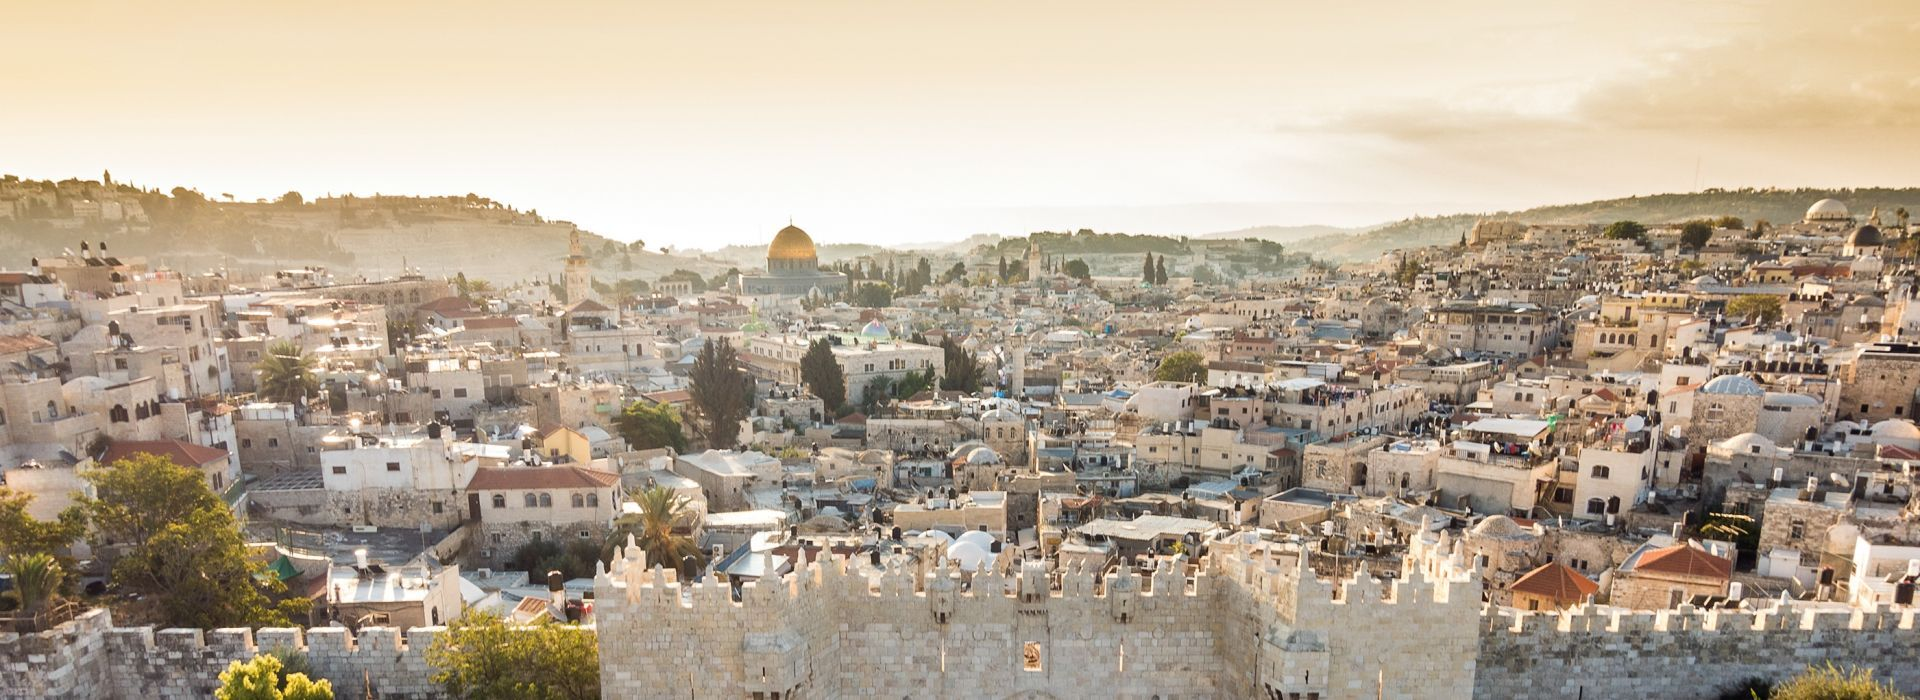 Cultural, religious and historic sites Tours in Israel